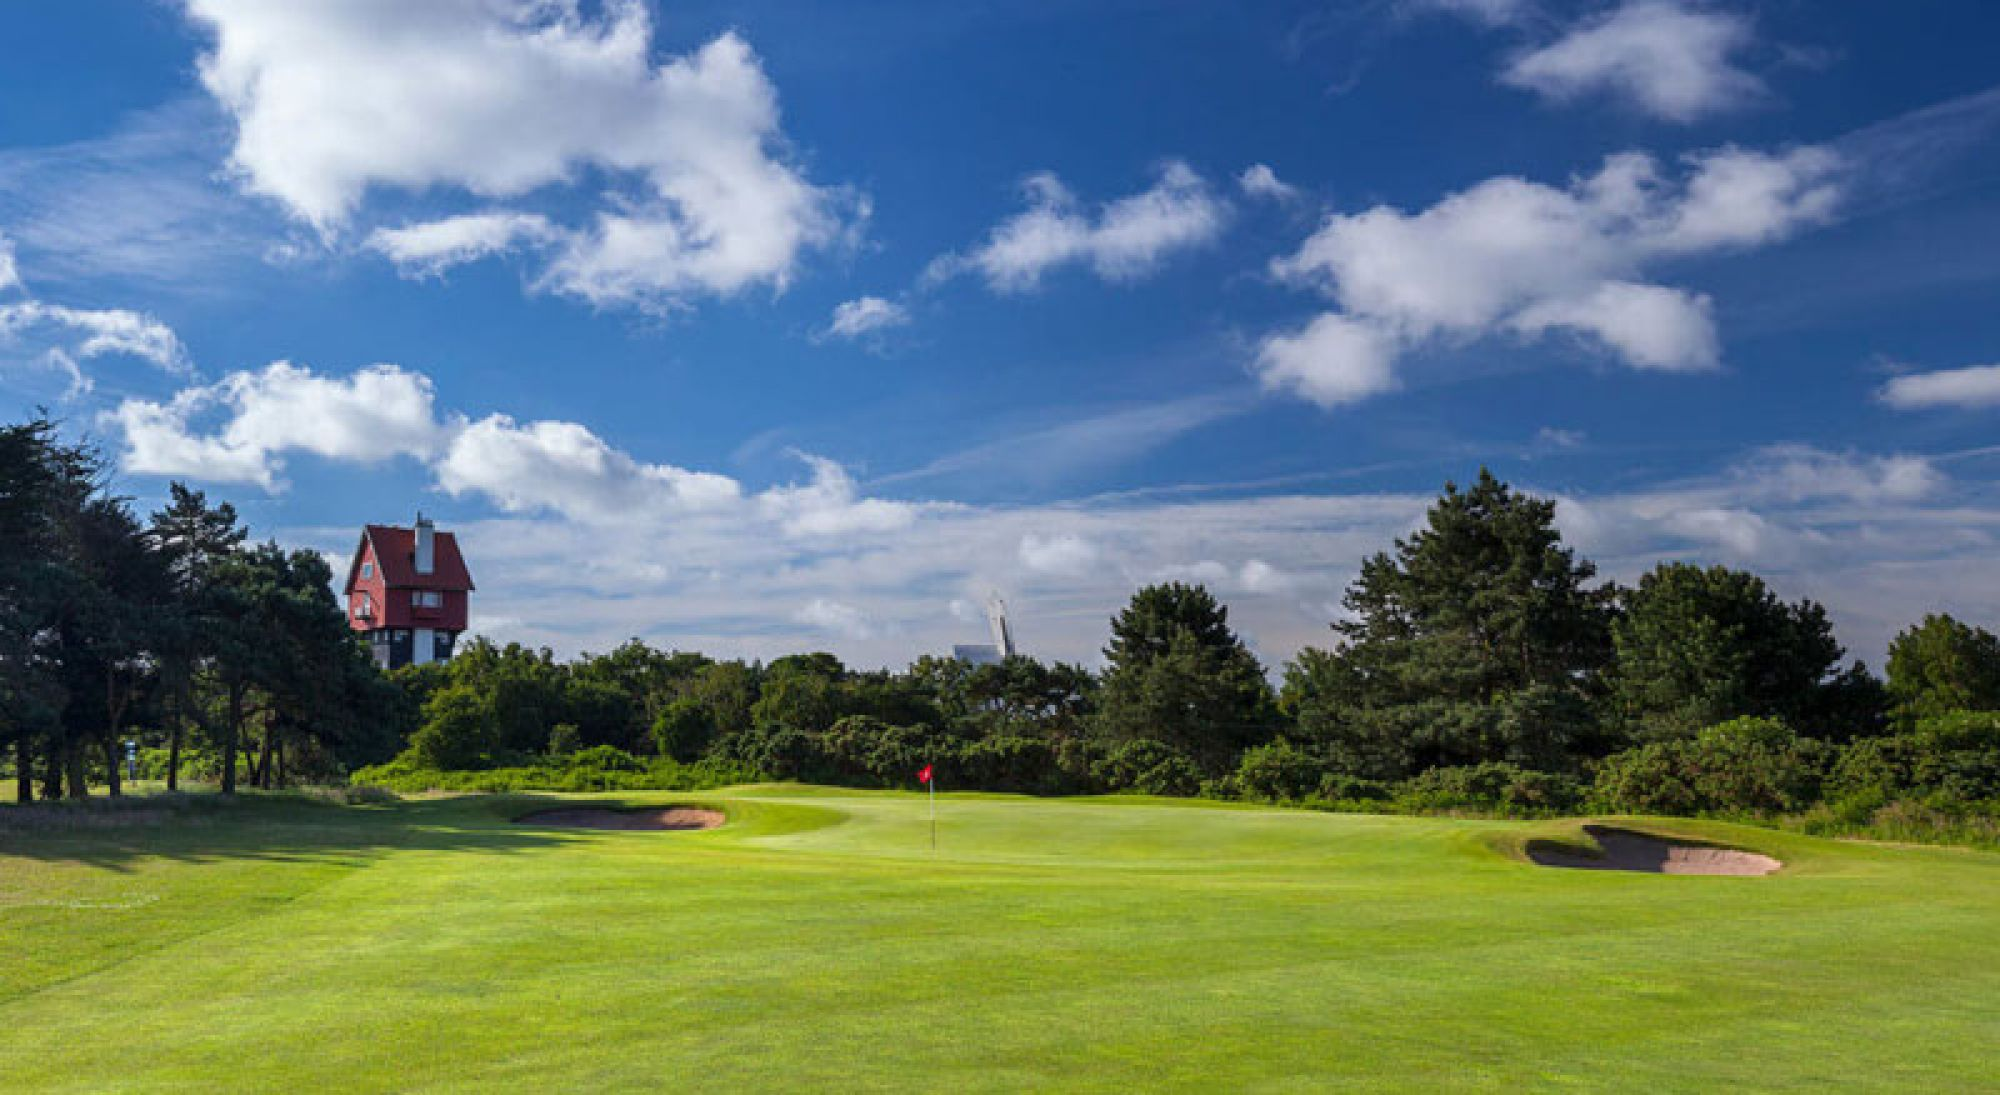 The Thorpeness Golf Club's impressive golf course within brilliant Suffolk.